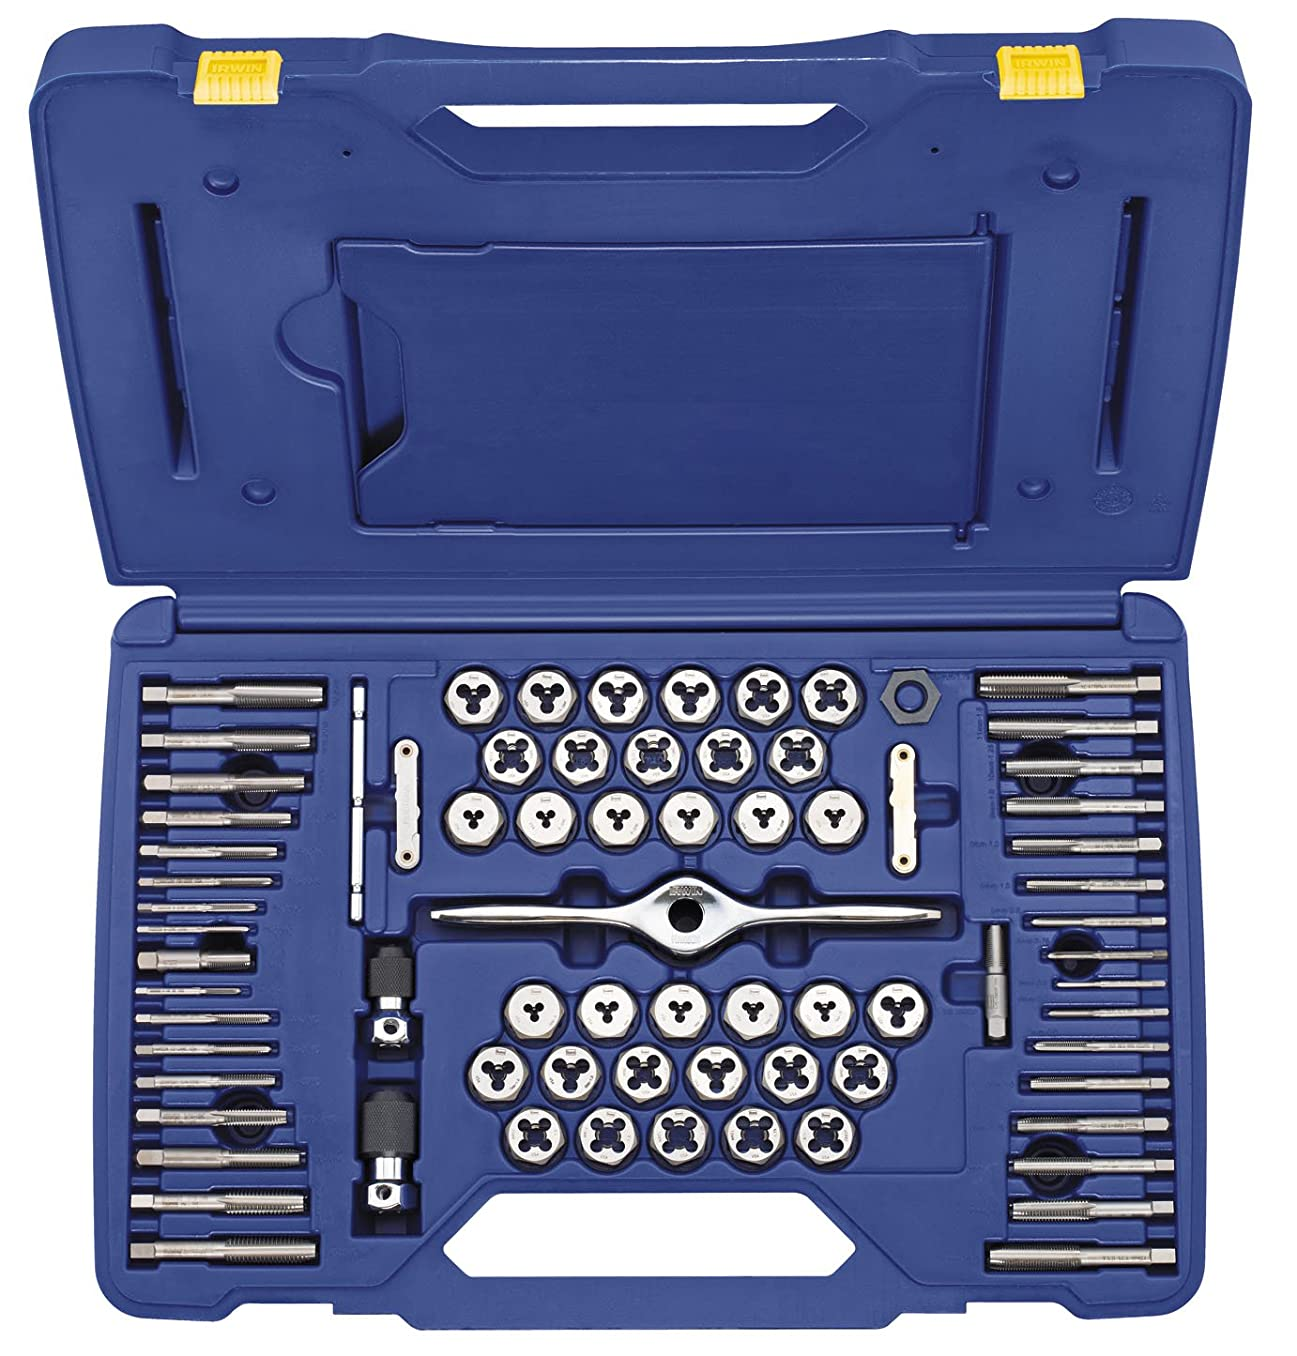 Irwin Tools 1841350 Performance Threading System Self-Aligning Tap and Die Set, 75-Piece